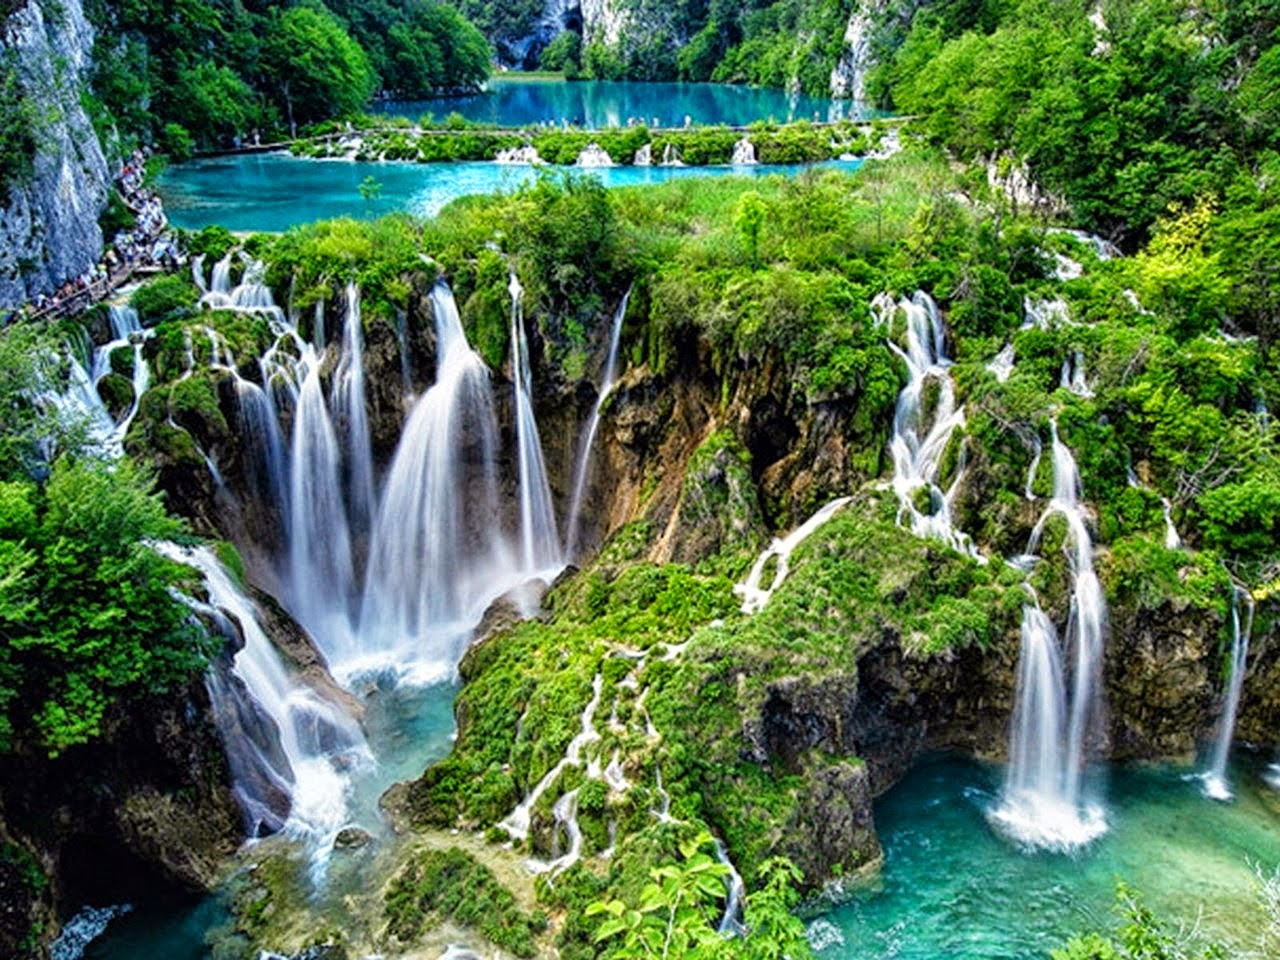 Plitvice, Croatia - Monterrasol private tours to Plitvice, Croatia. Travel agency offers custom private car tours to see Plitvice in Croatia. Order custom private tour to Plitvice with departure date on request.